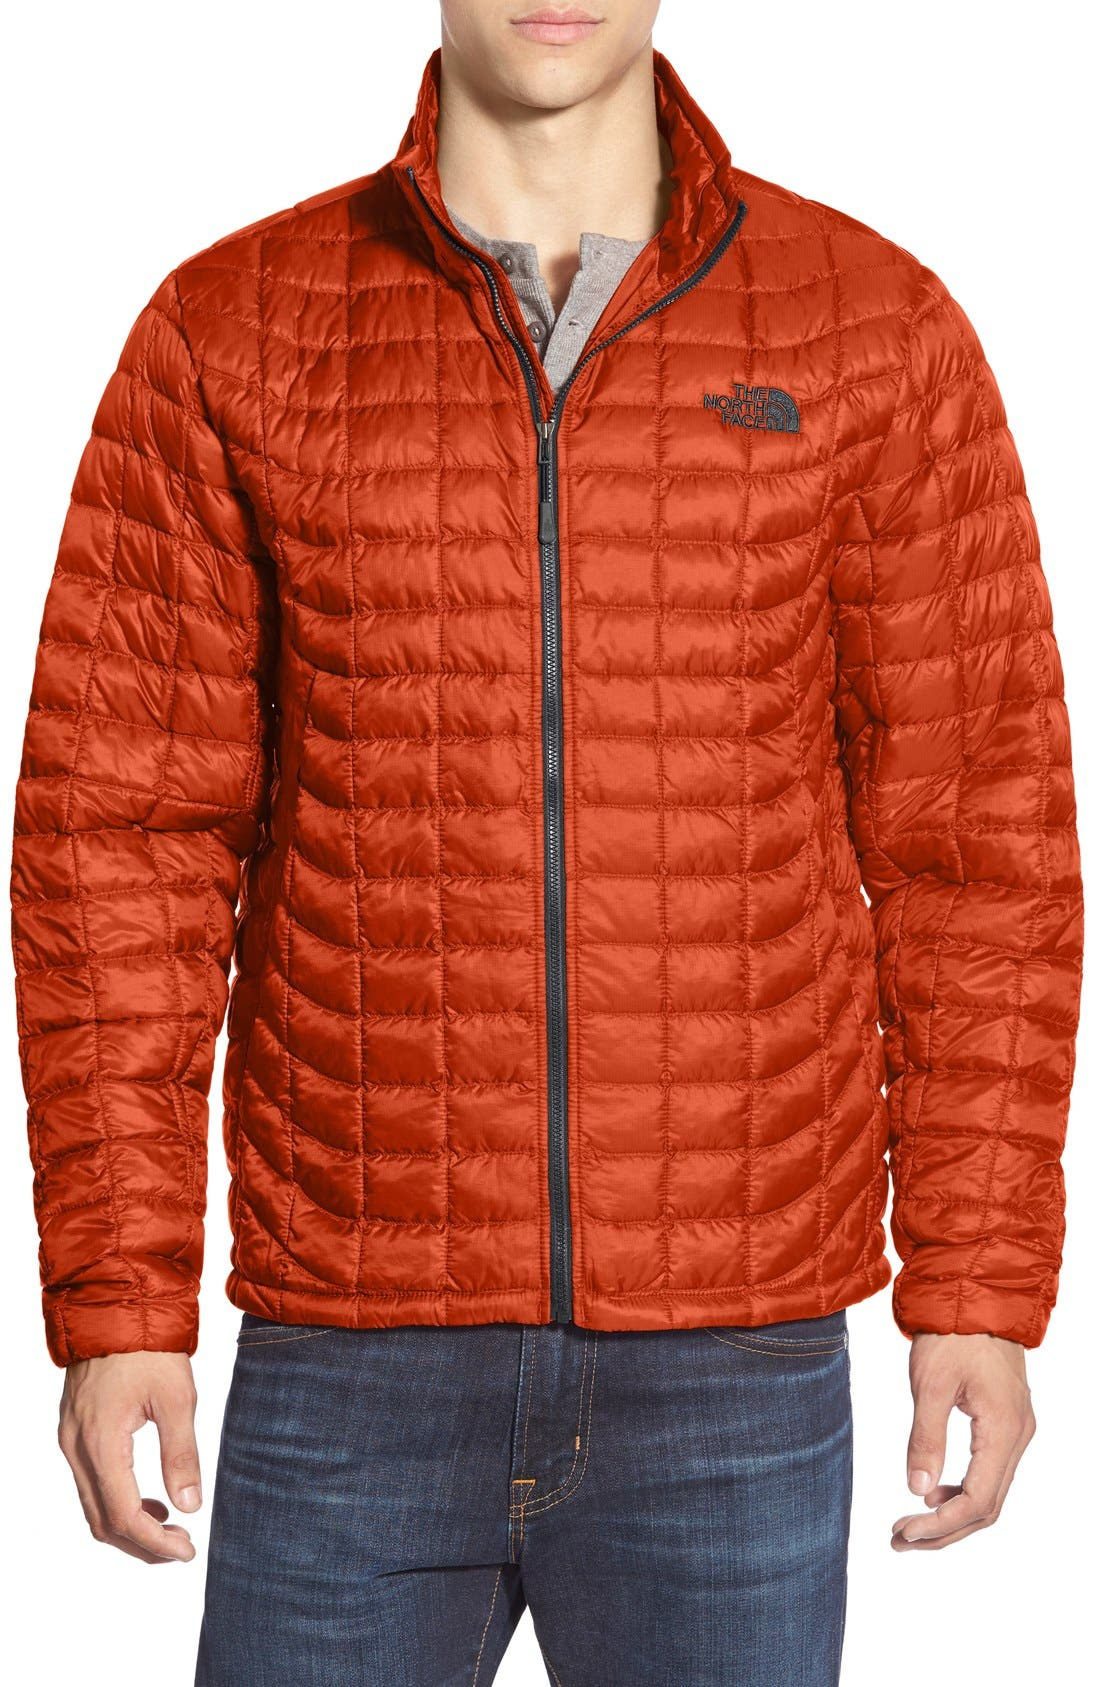 PrimaLoft<sup>®</sup> ThermoBall<sup>™</sup> Full Zip Jacket,                             Main thumbnail 27, color,